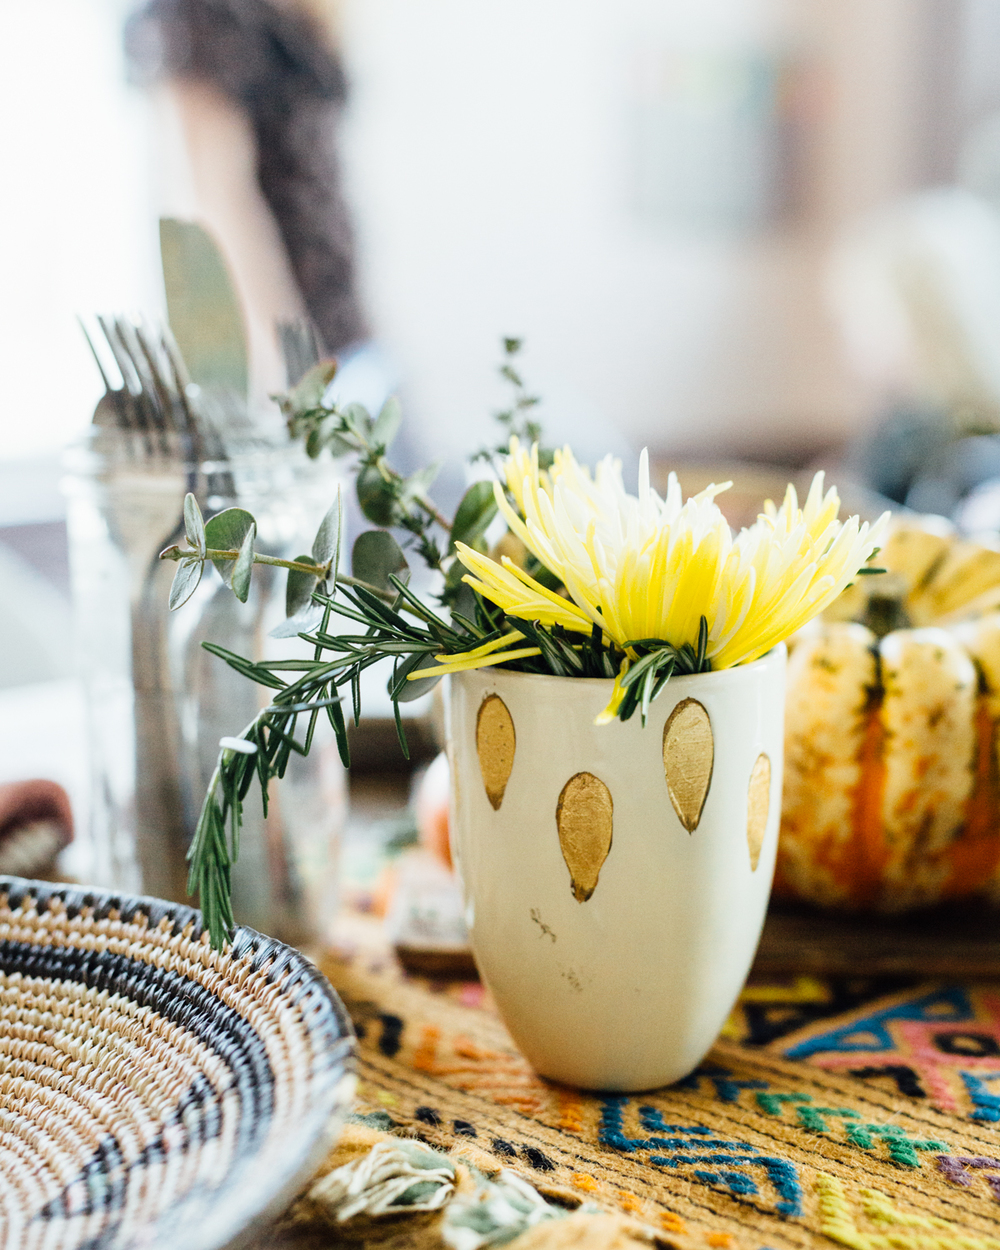 Try peppering in some fresh herbs into the flower arrangements for an edible garden that compliments your spread. Guests can help themselves to extra flavor.